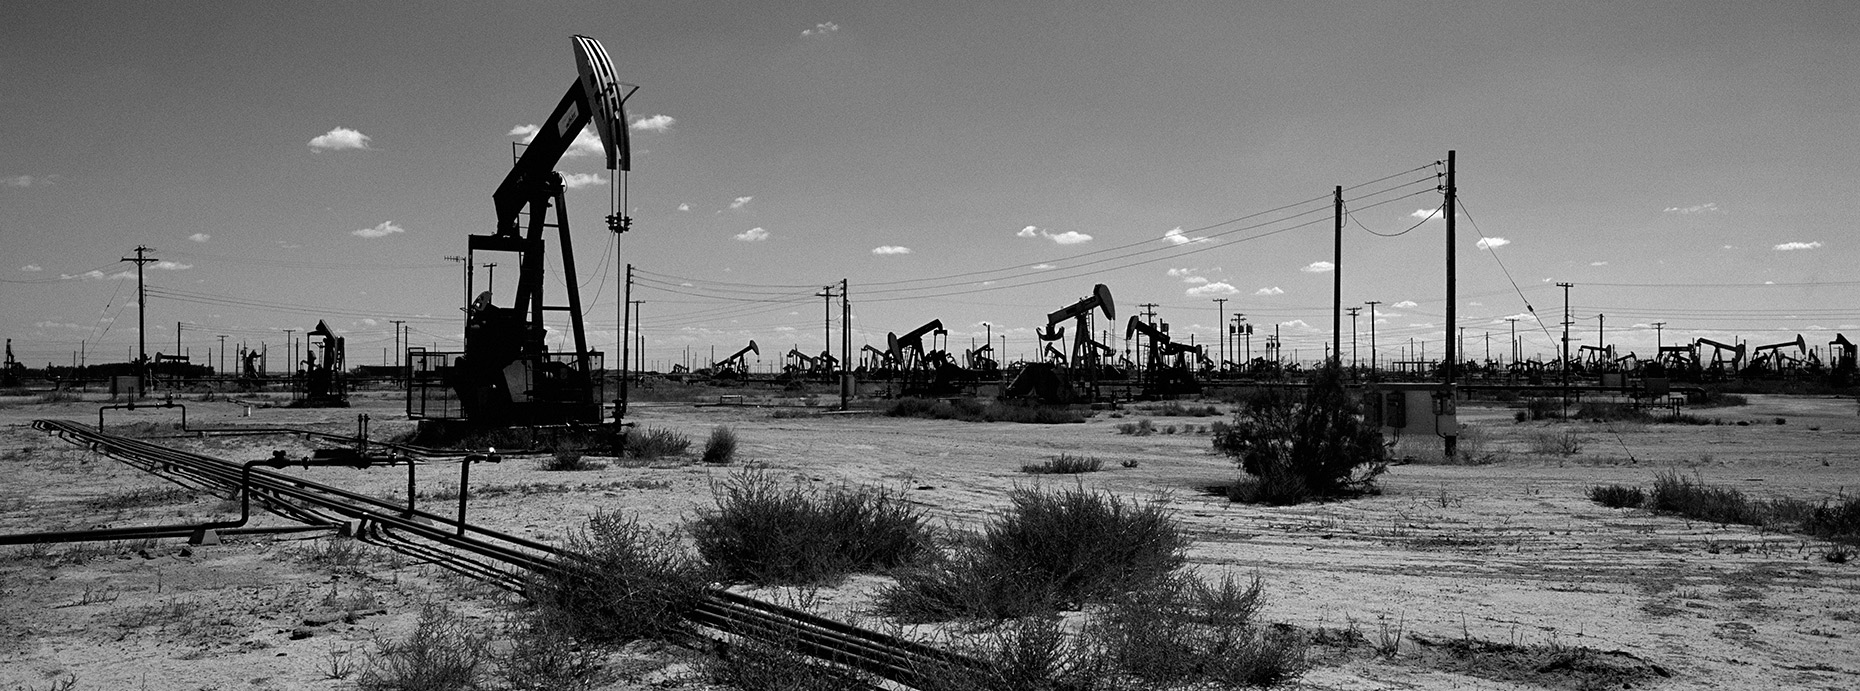 chevron gas field bakersfield ©Paul Hampton Photographer Glasgow